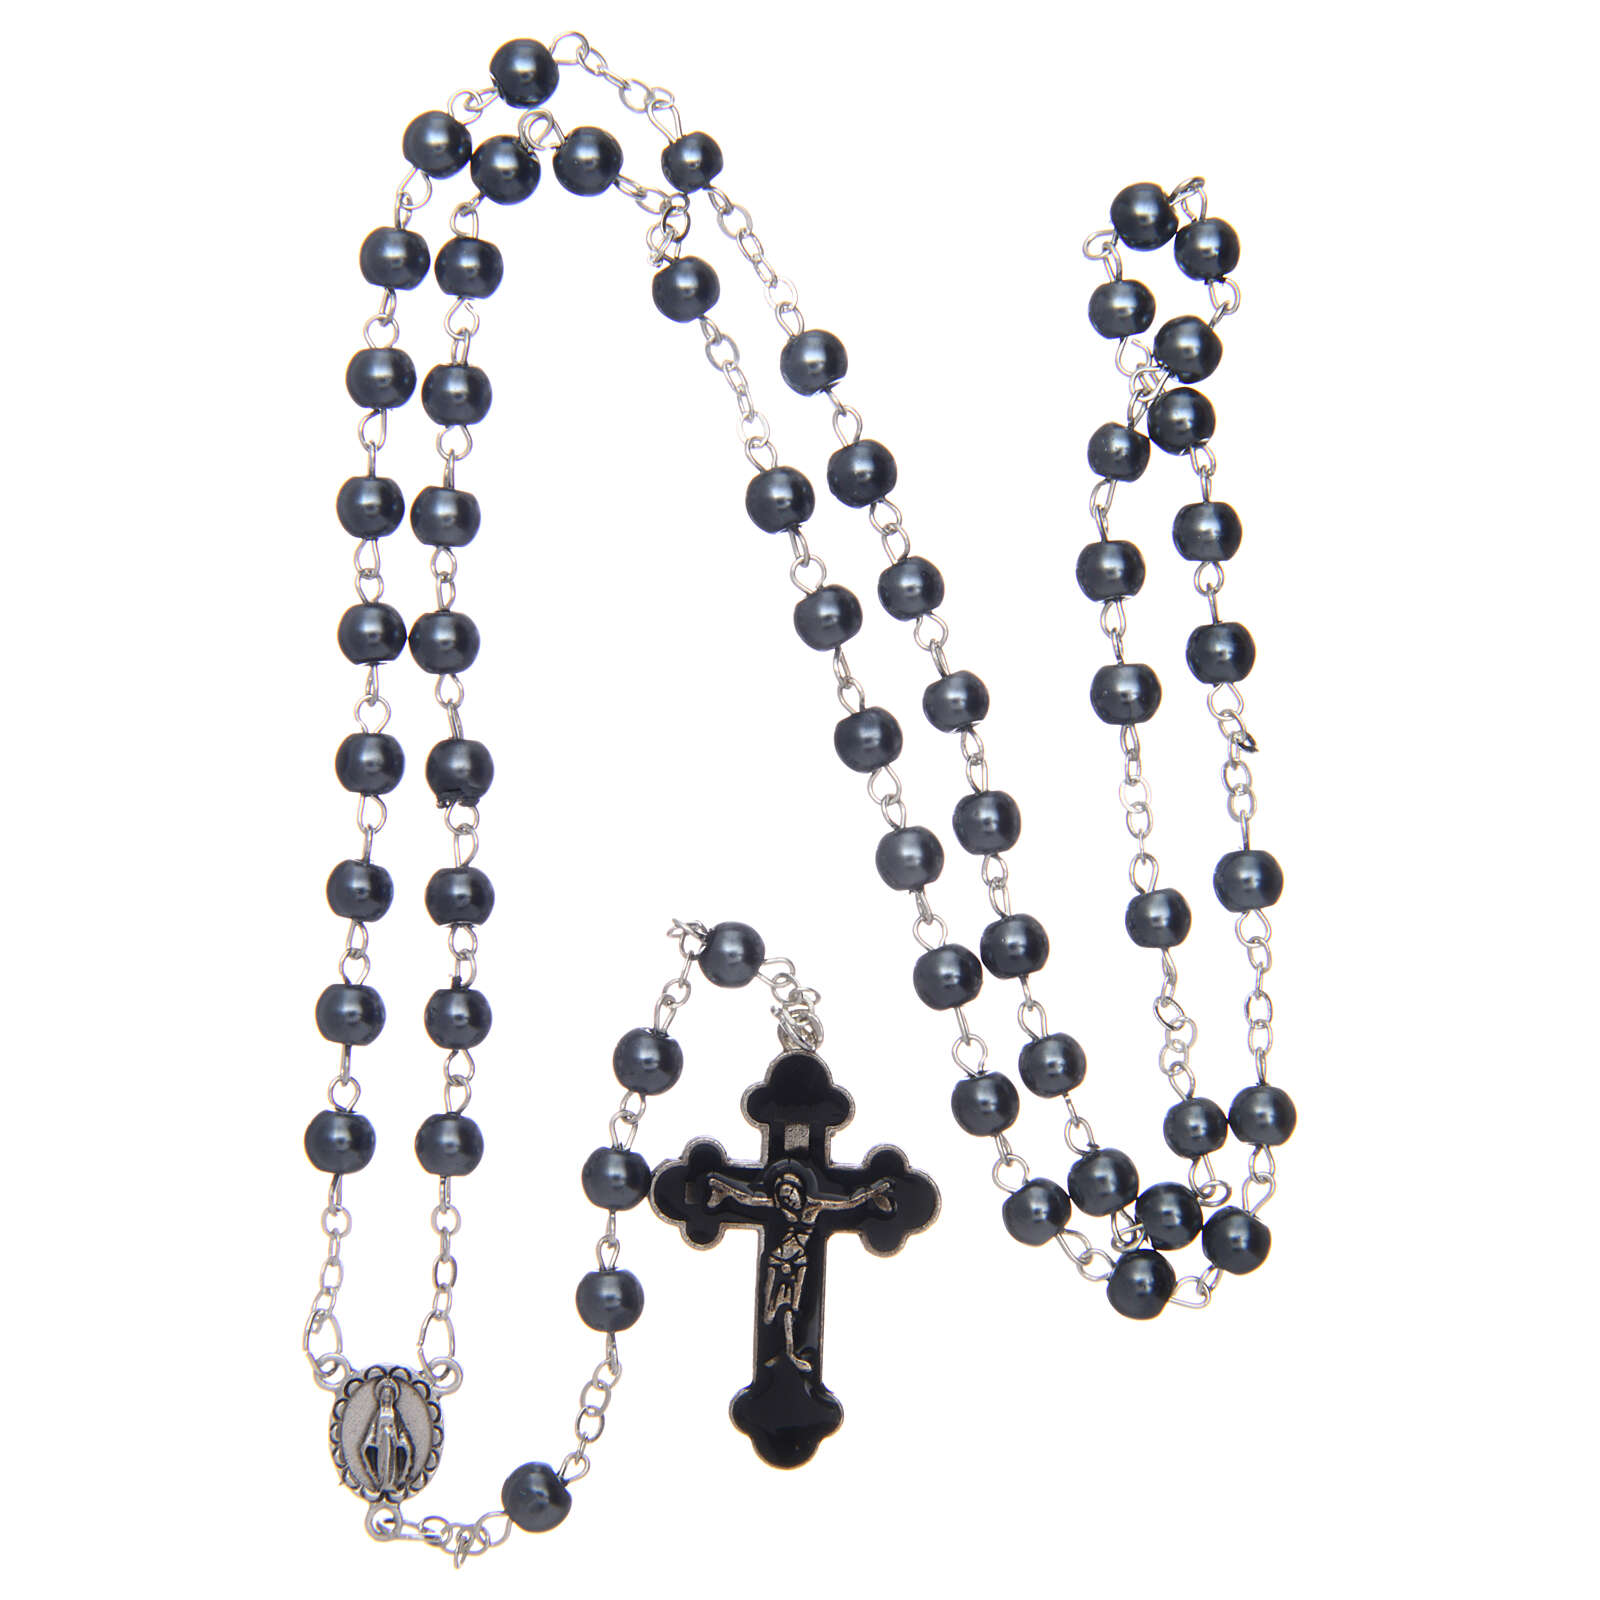 Imitation pearl rosary round hematite color beads 5 mm enamelled cross 4